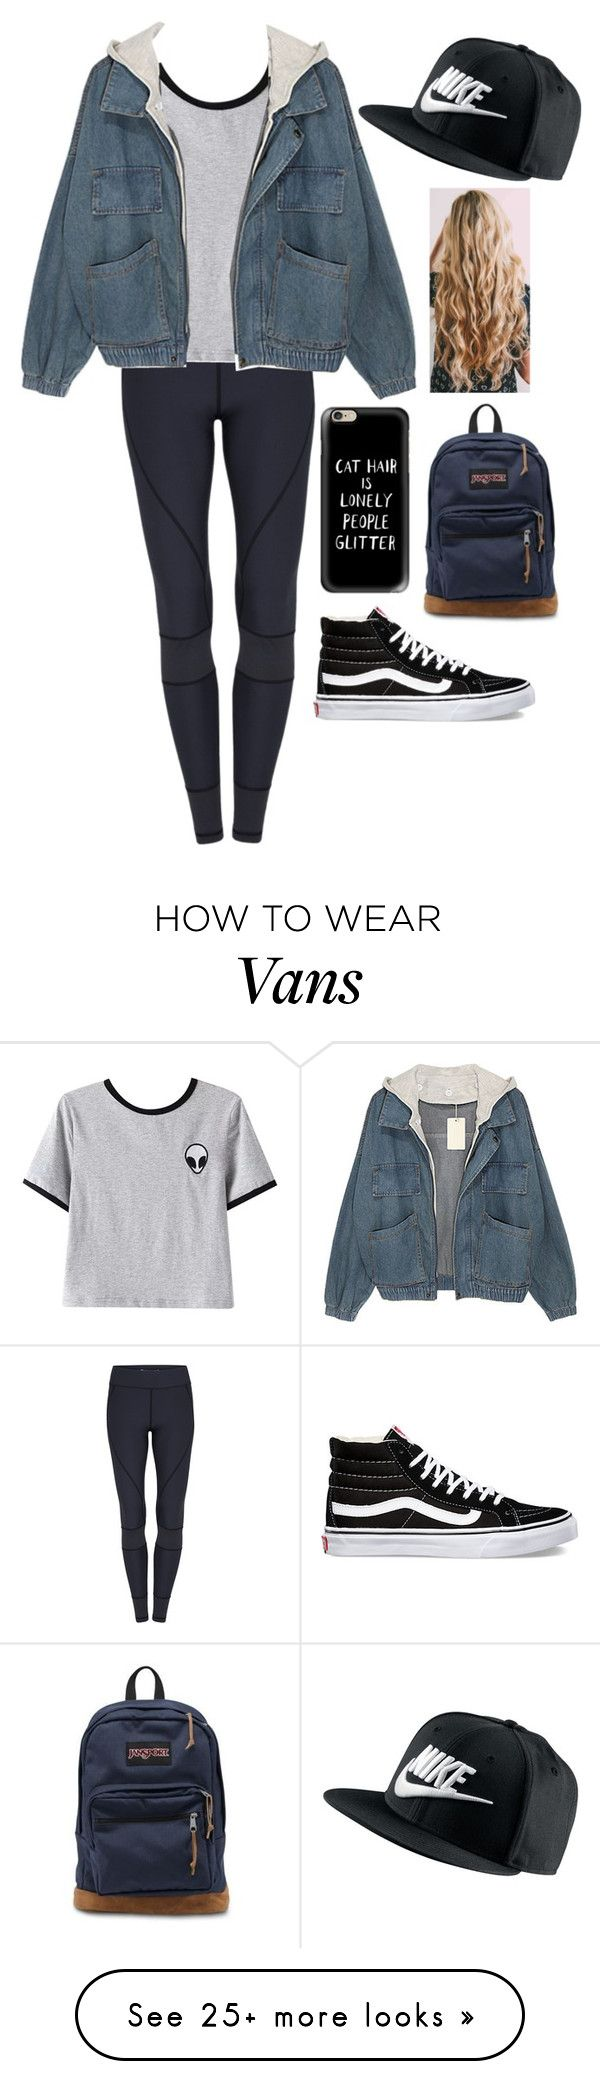 """Out with J, A, T, and big bro J"" by haeys on Polyvore featuring Chicnova Fashion, NIKE, Casetify, Vans and JanSport"